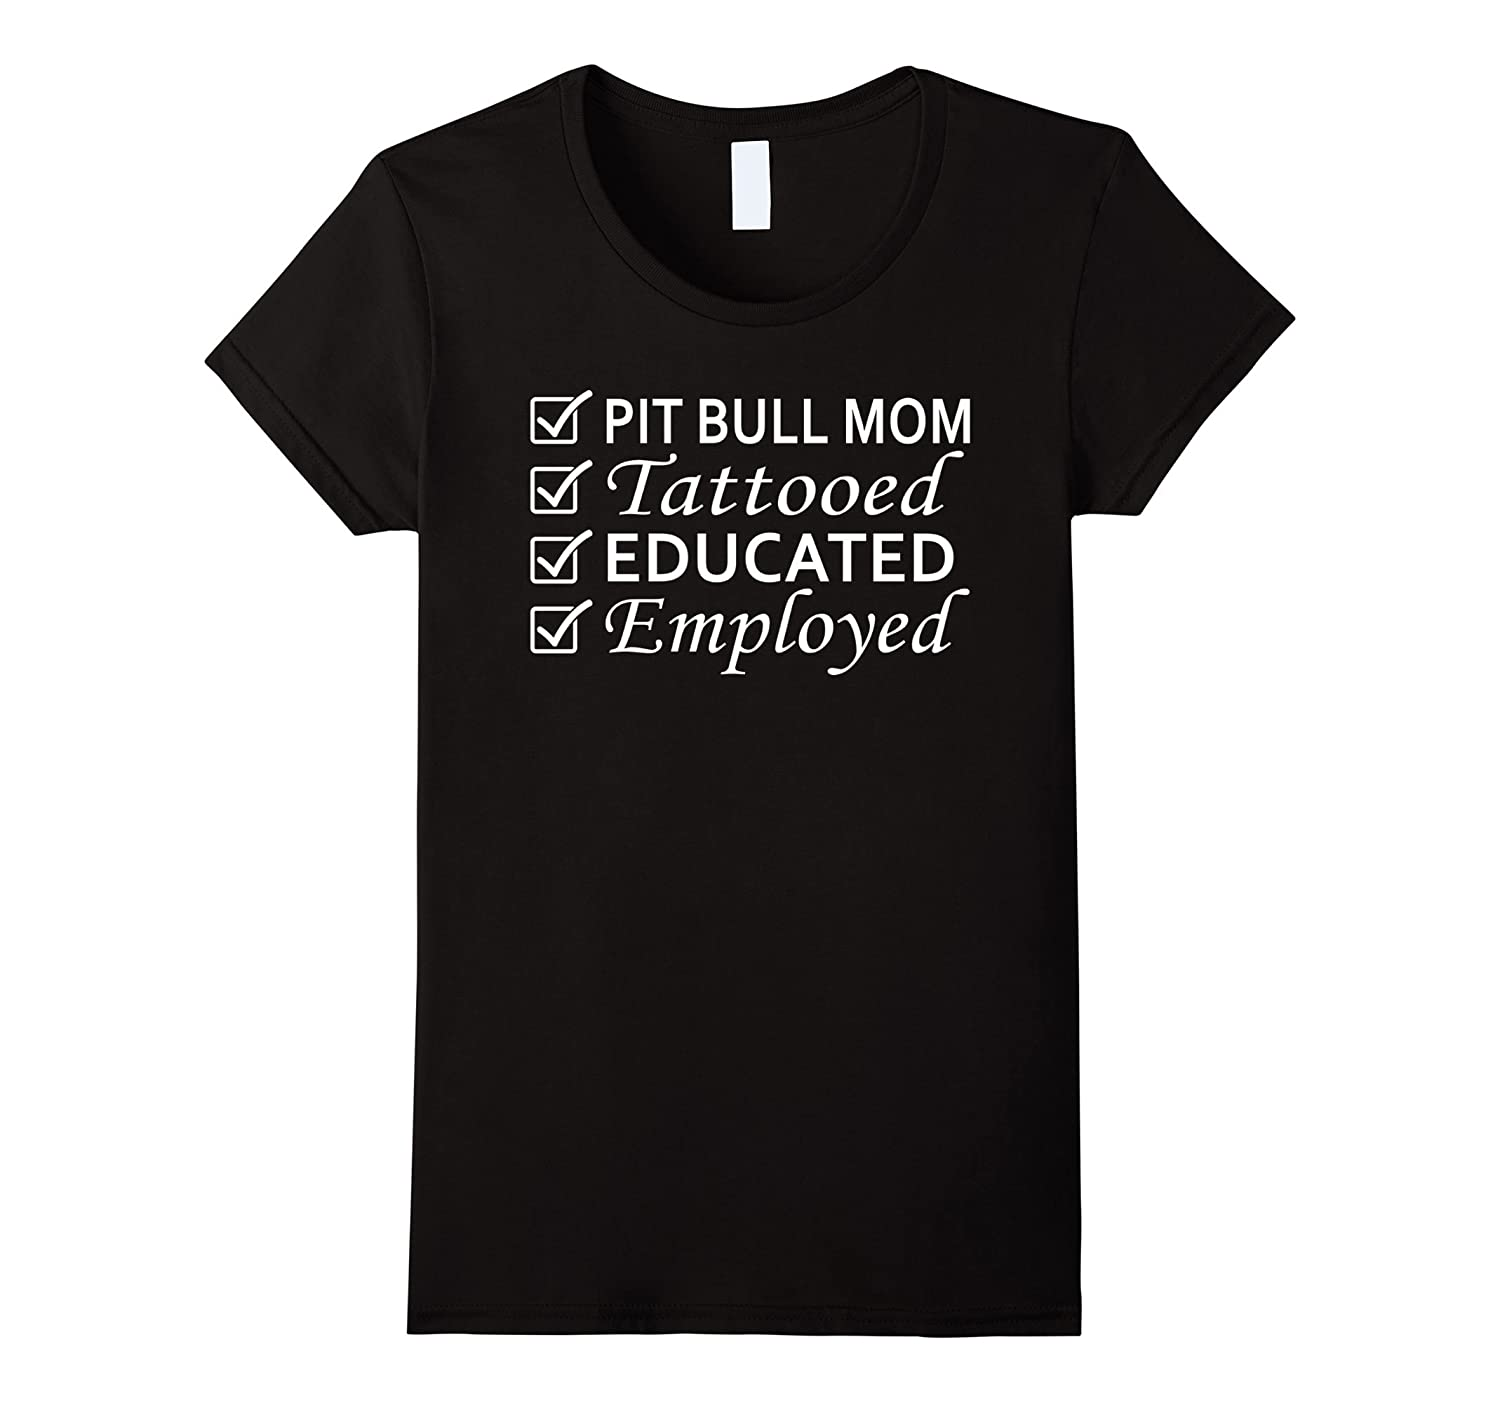 Women's Pit bull mom, tattooed, educated, and employed T-shirt-TH